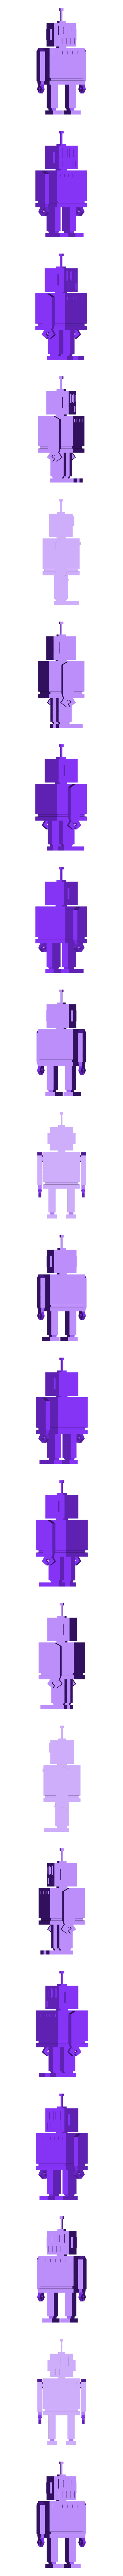 Robot_01.obj Download free OBJ file Robot • 3D printable object, Colorful3D